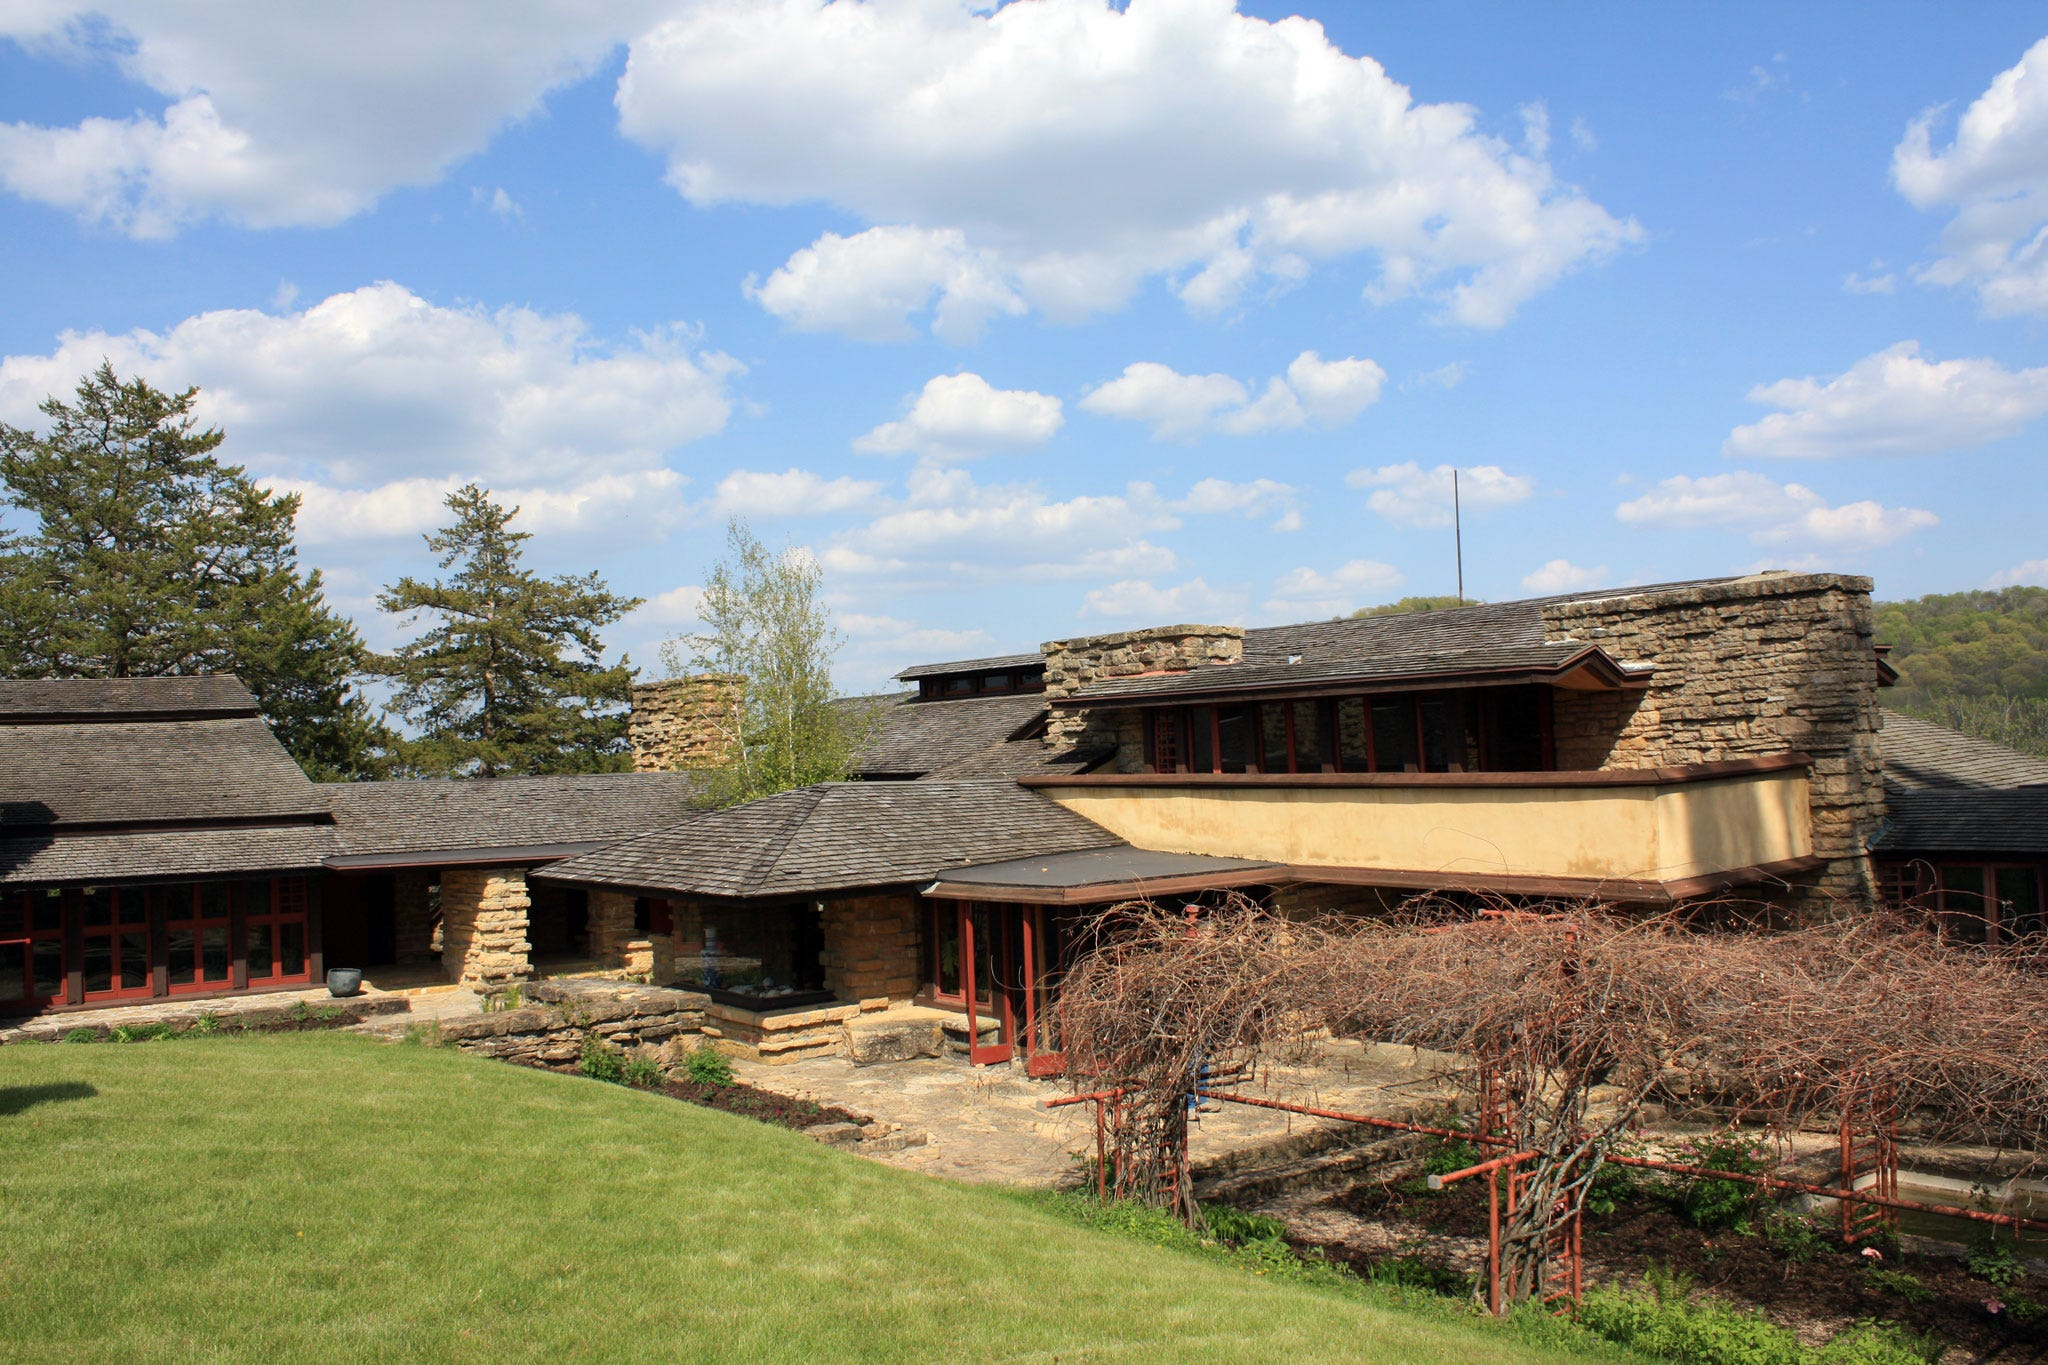 frank lloyd wright built taliesin into a hill in spring green photo chelsey lewis milwaukee journal sentinel